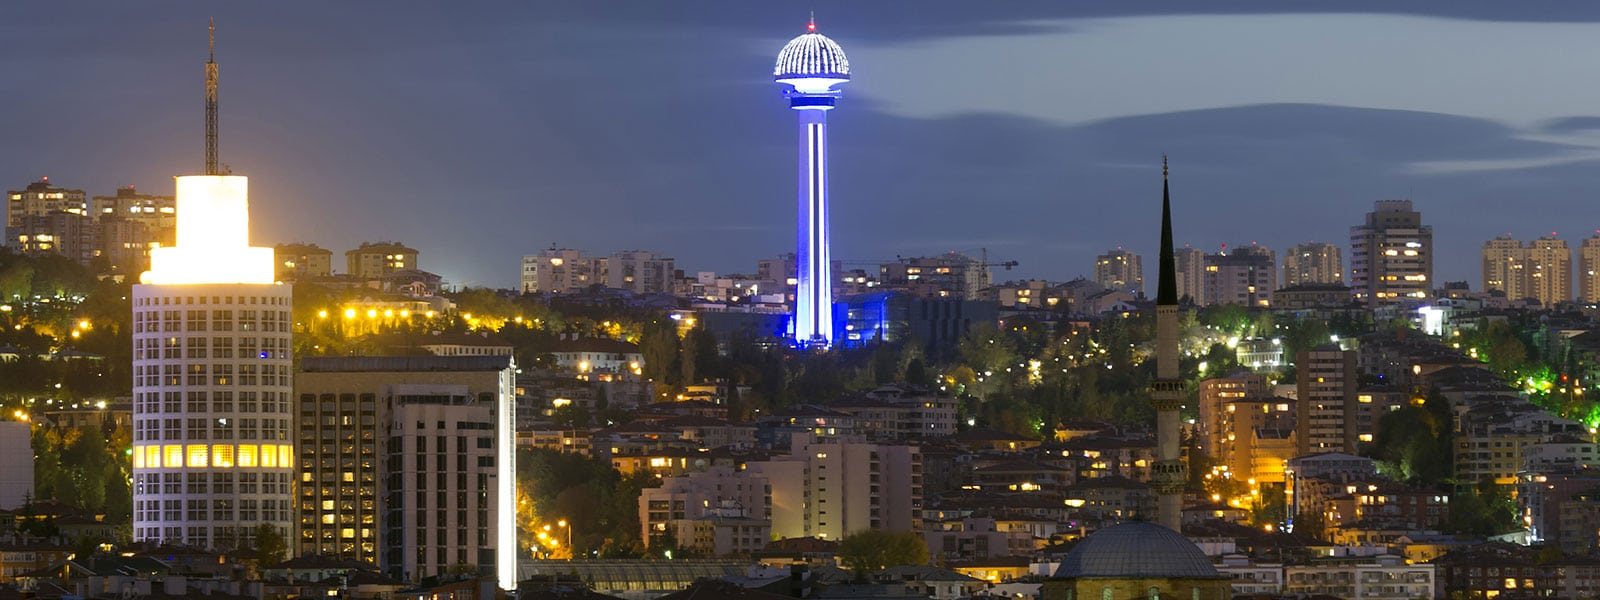 Ankara Capital of Turkey